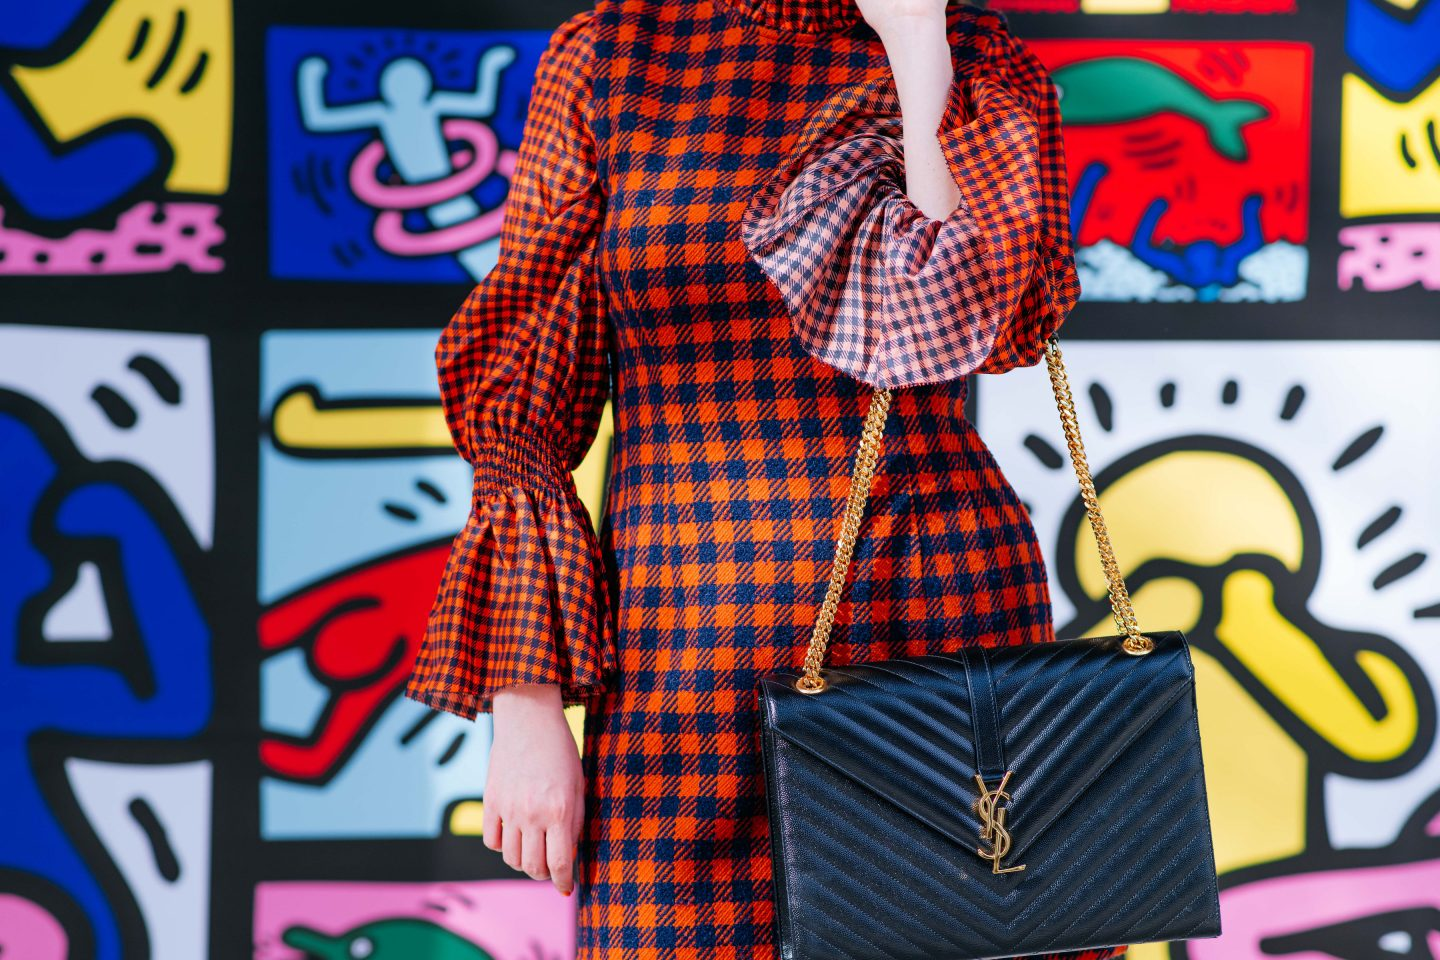 sea new york orange check, sea ethno pop dress, flannel dress, plaid dress, ysl cassandre bag, ysl shoulder bag, sea new york plaid dress, sea new york dress, alice and olivia wall